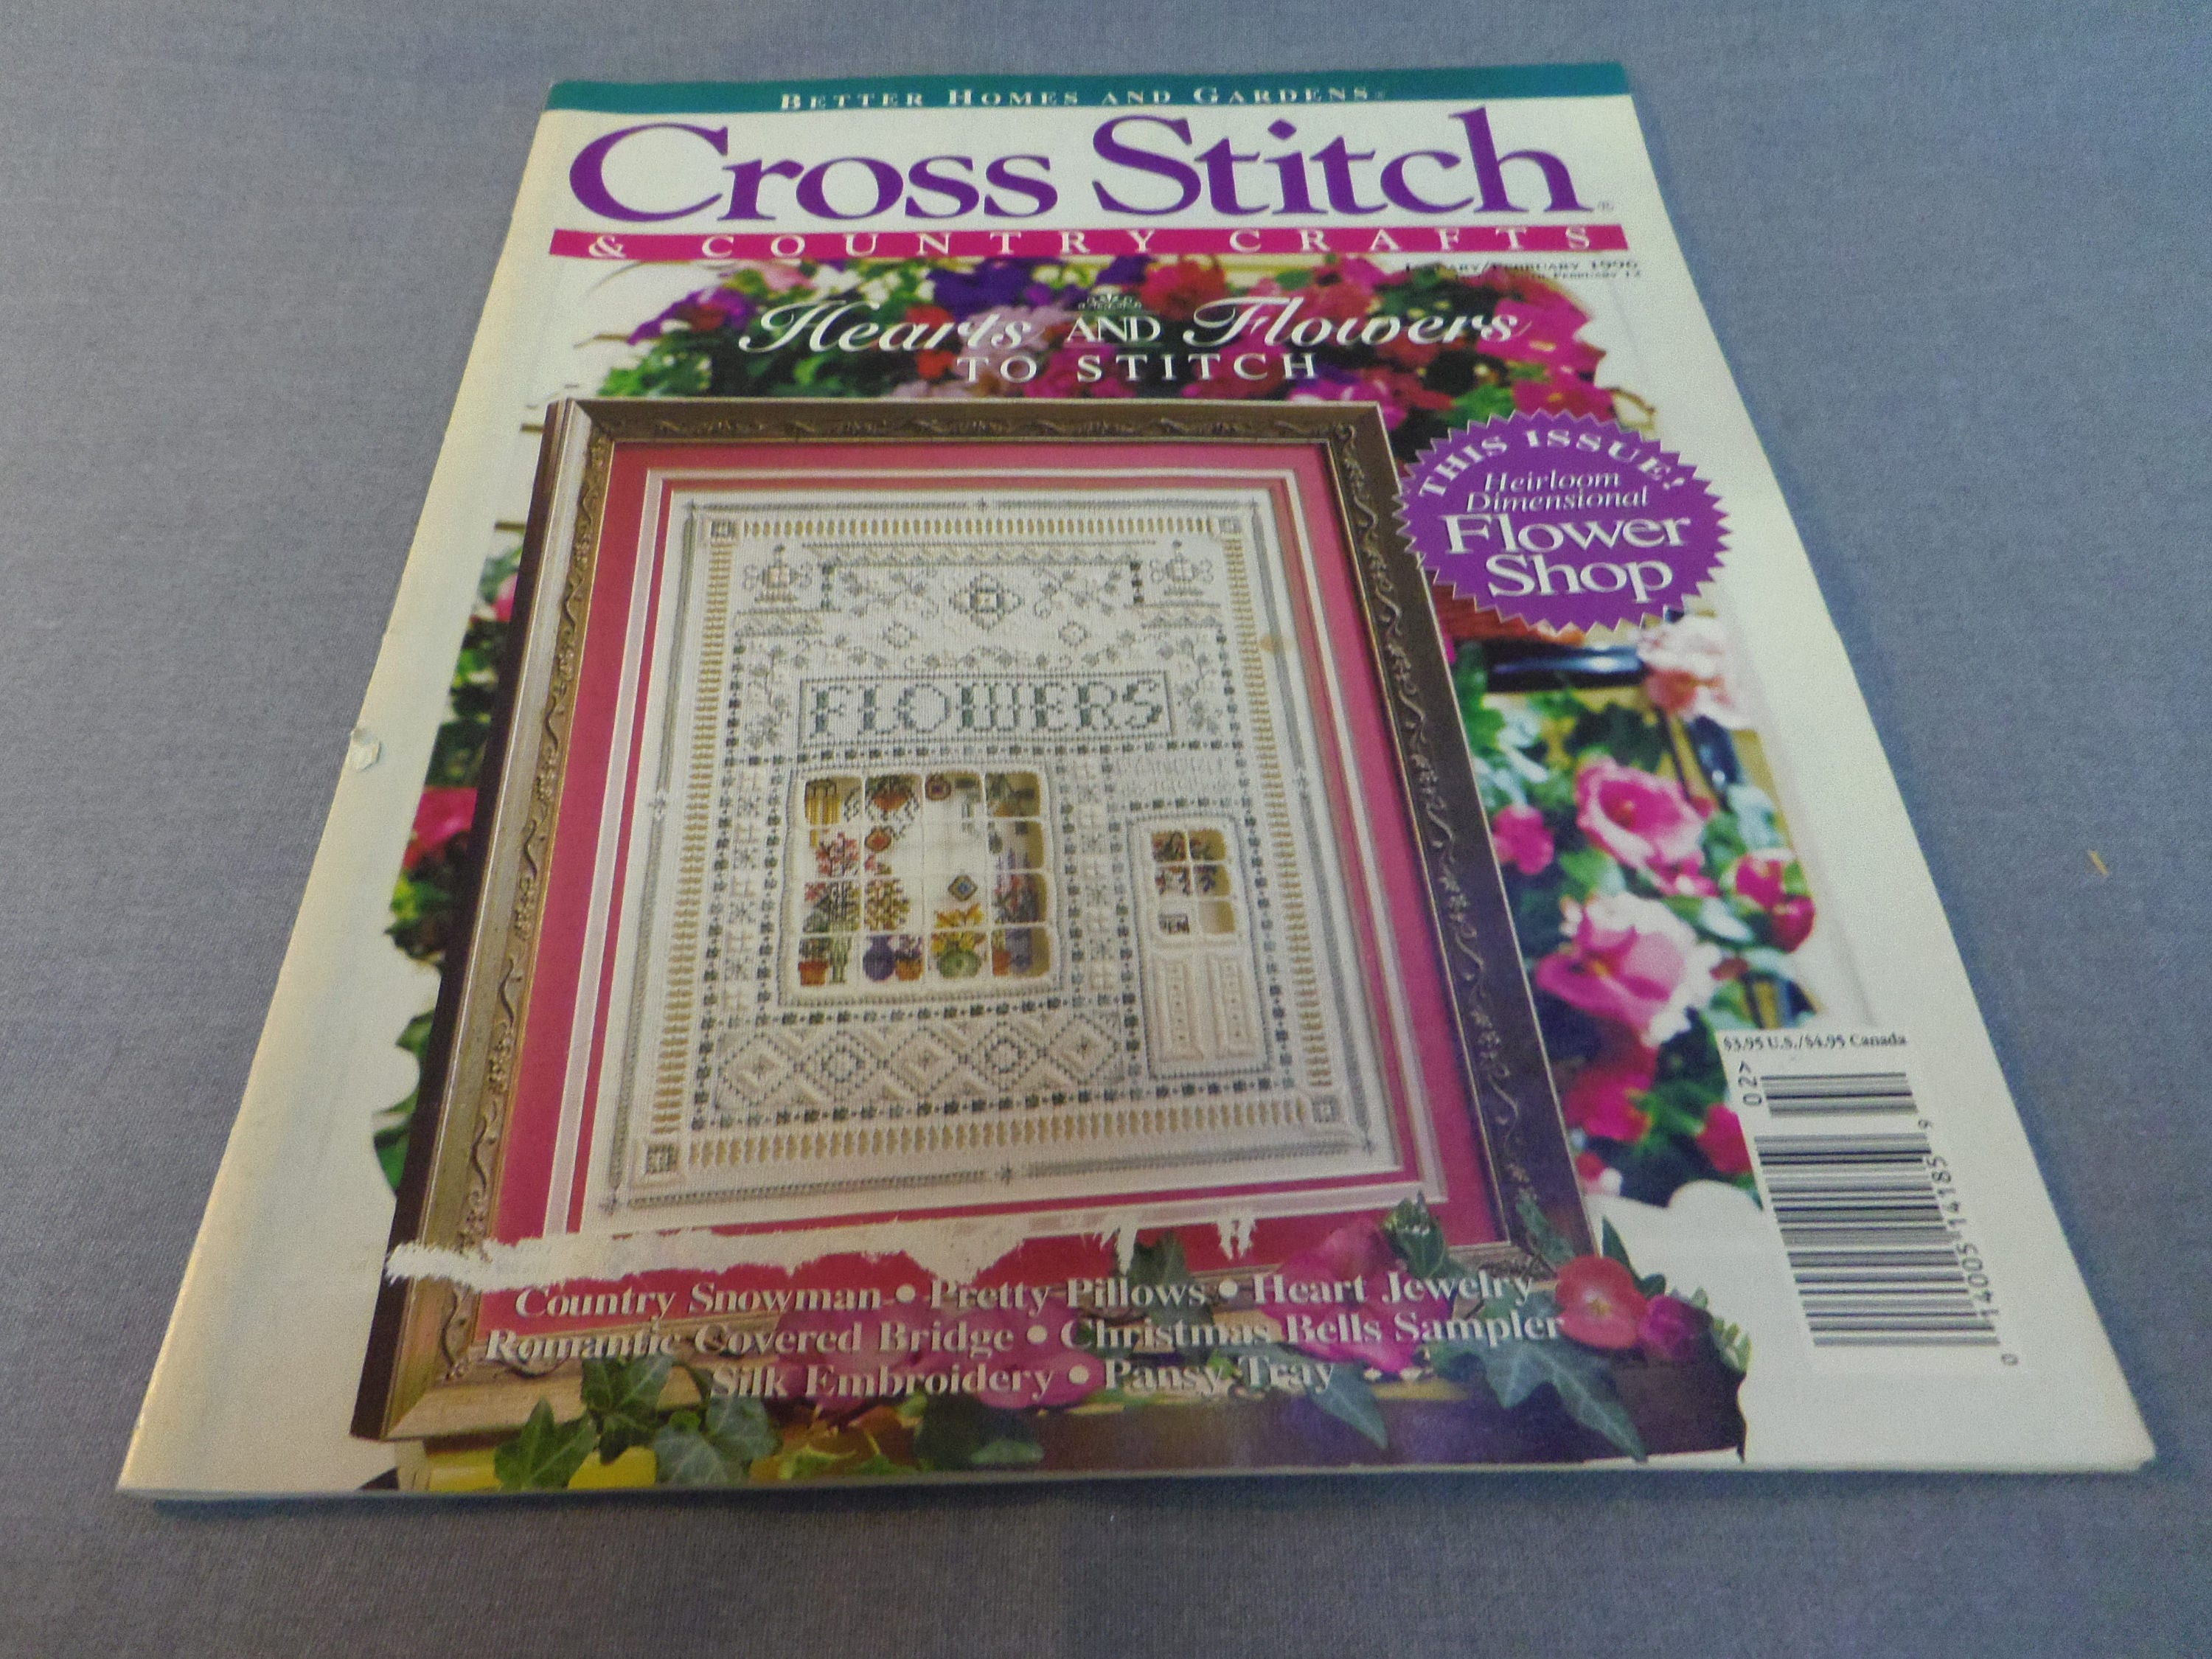 Cross stitch country crafts magazine back issues - Cross Stitch And Country Crafts Magazine Back Issue Jan Feb 1996 Counted Cross Stitch